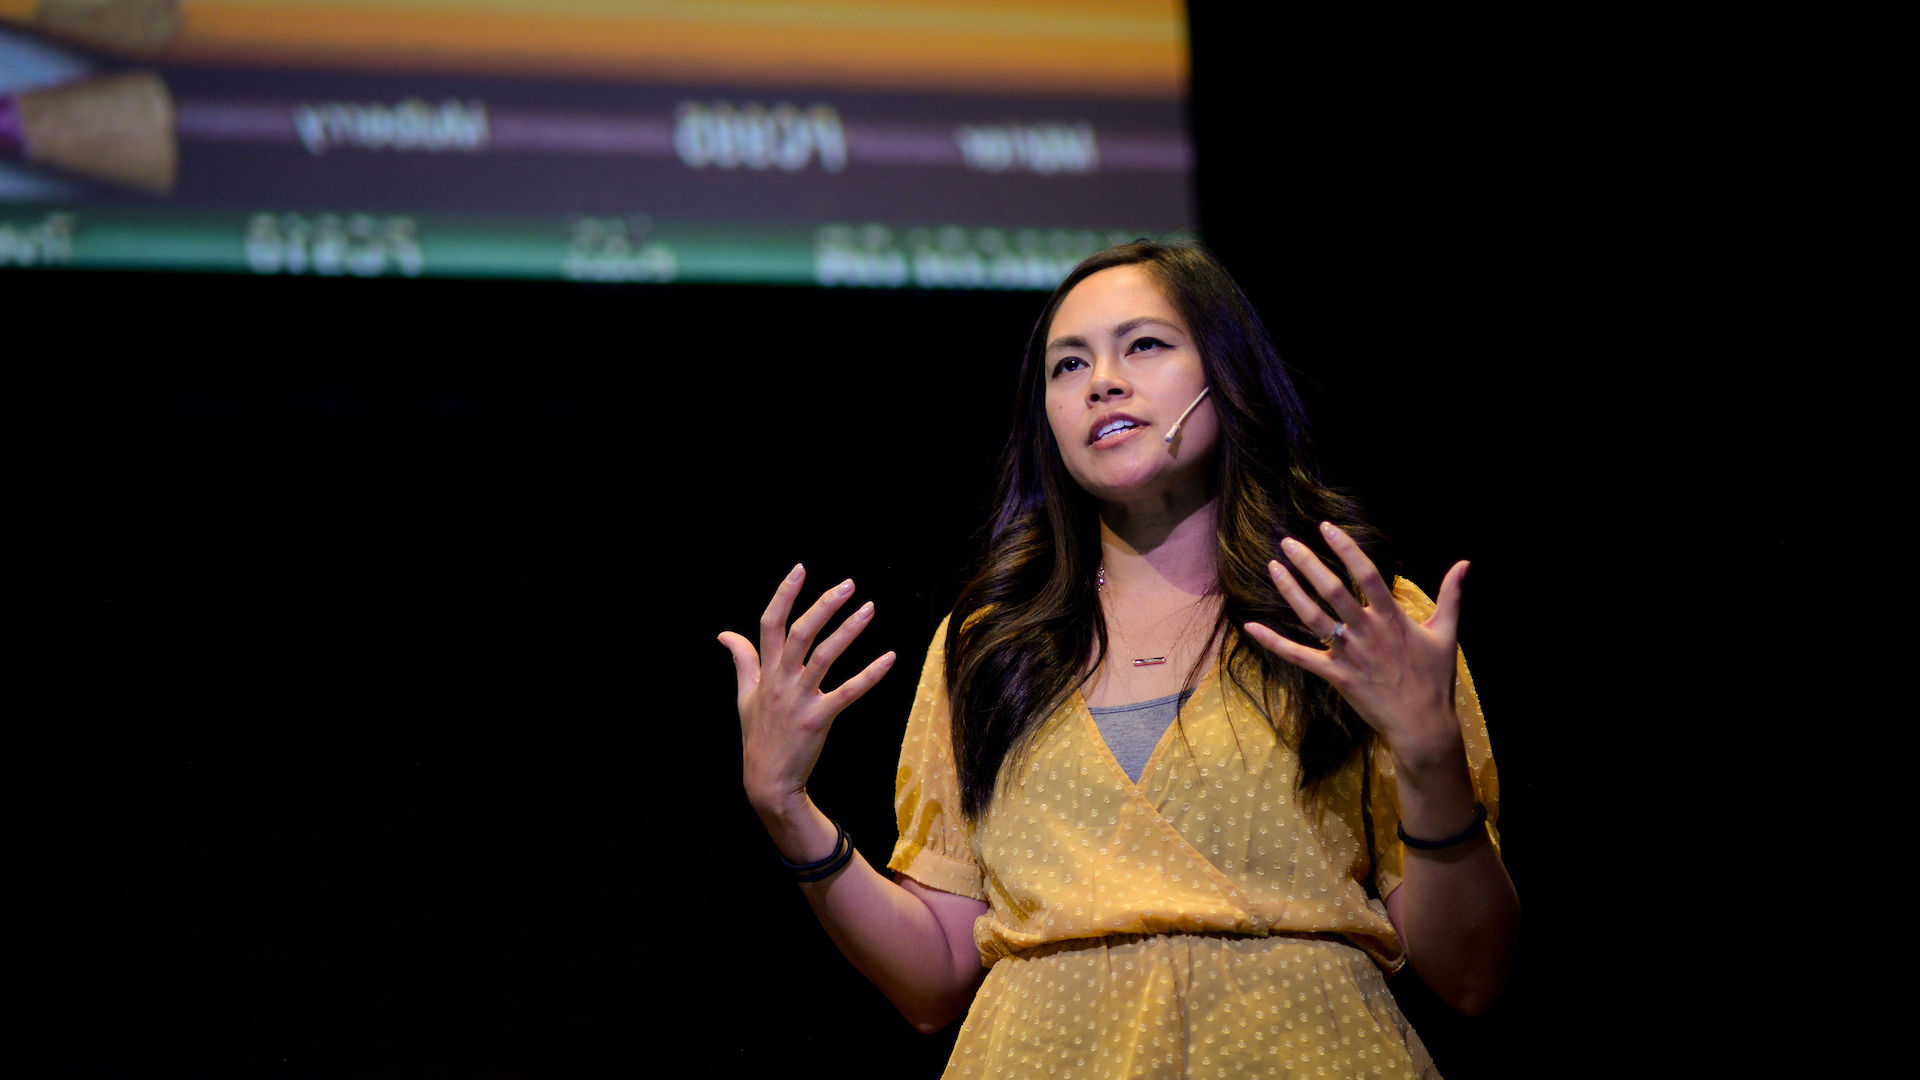 Yvonne Gando presenting on stage at Fluxible 2018